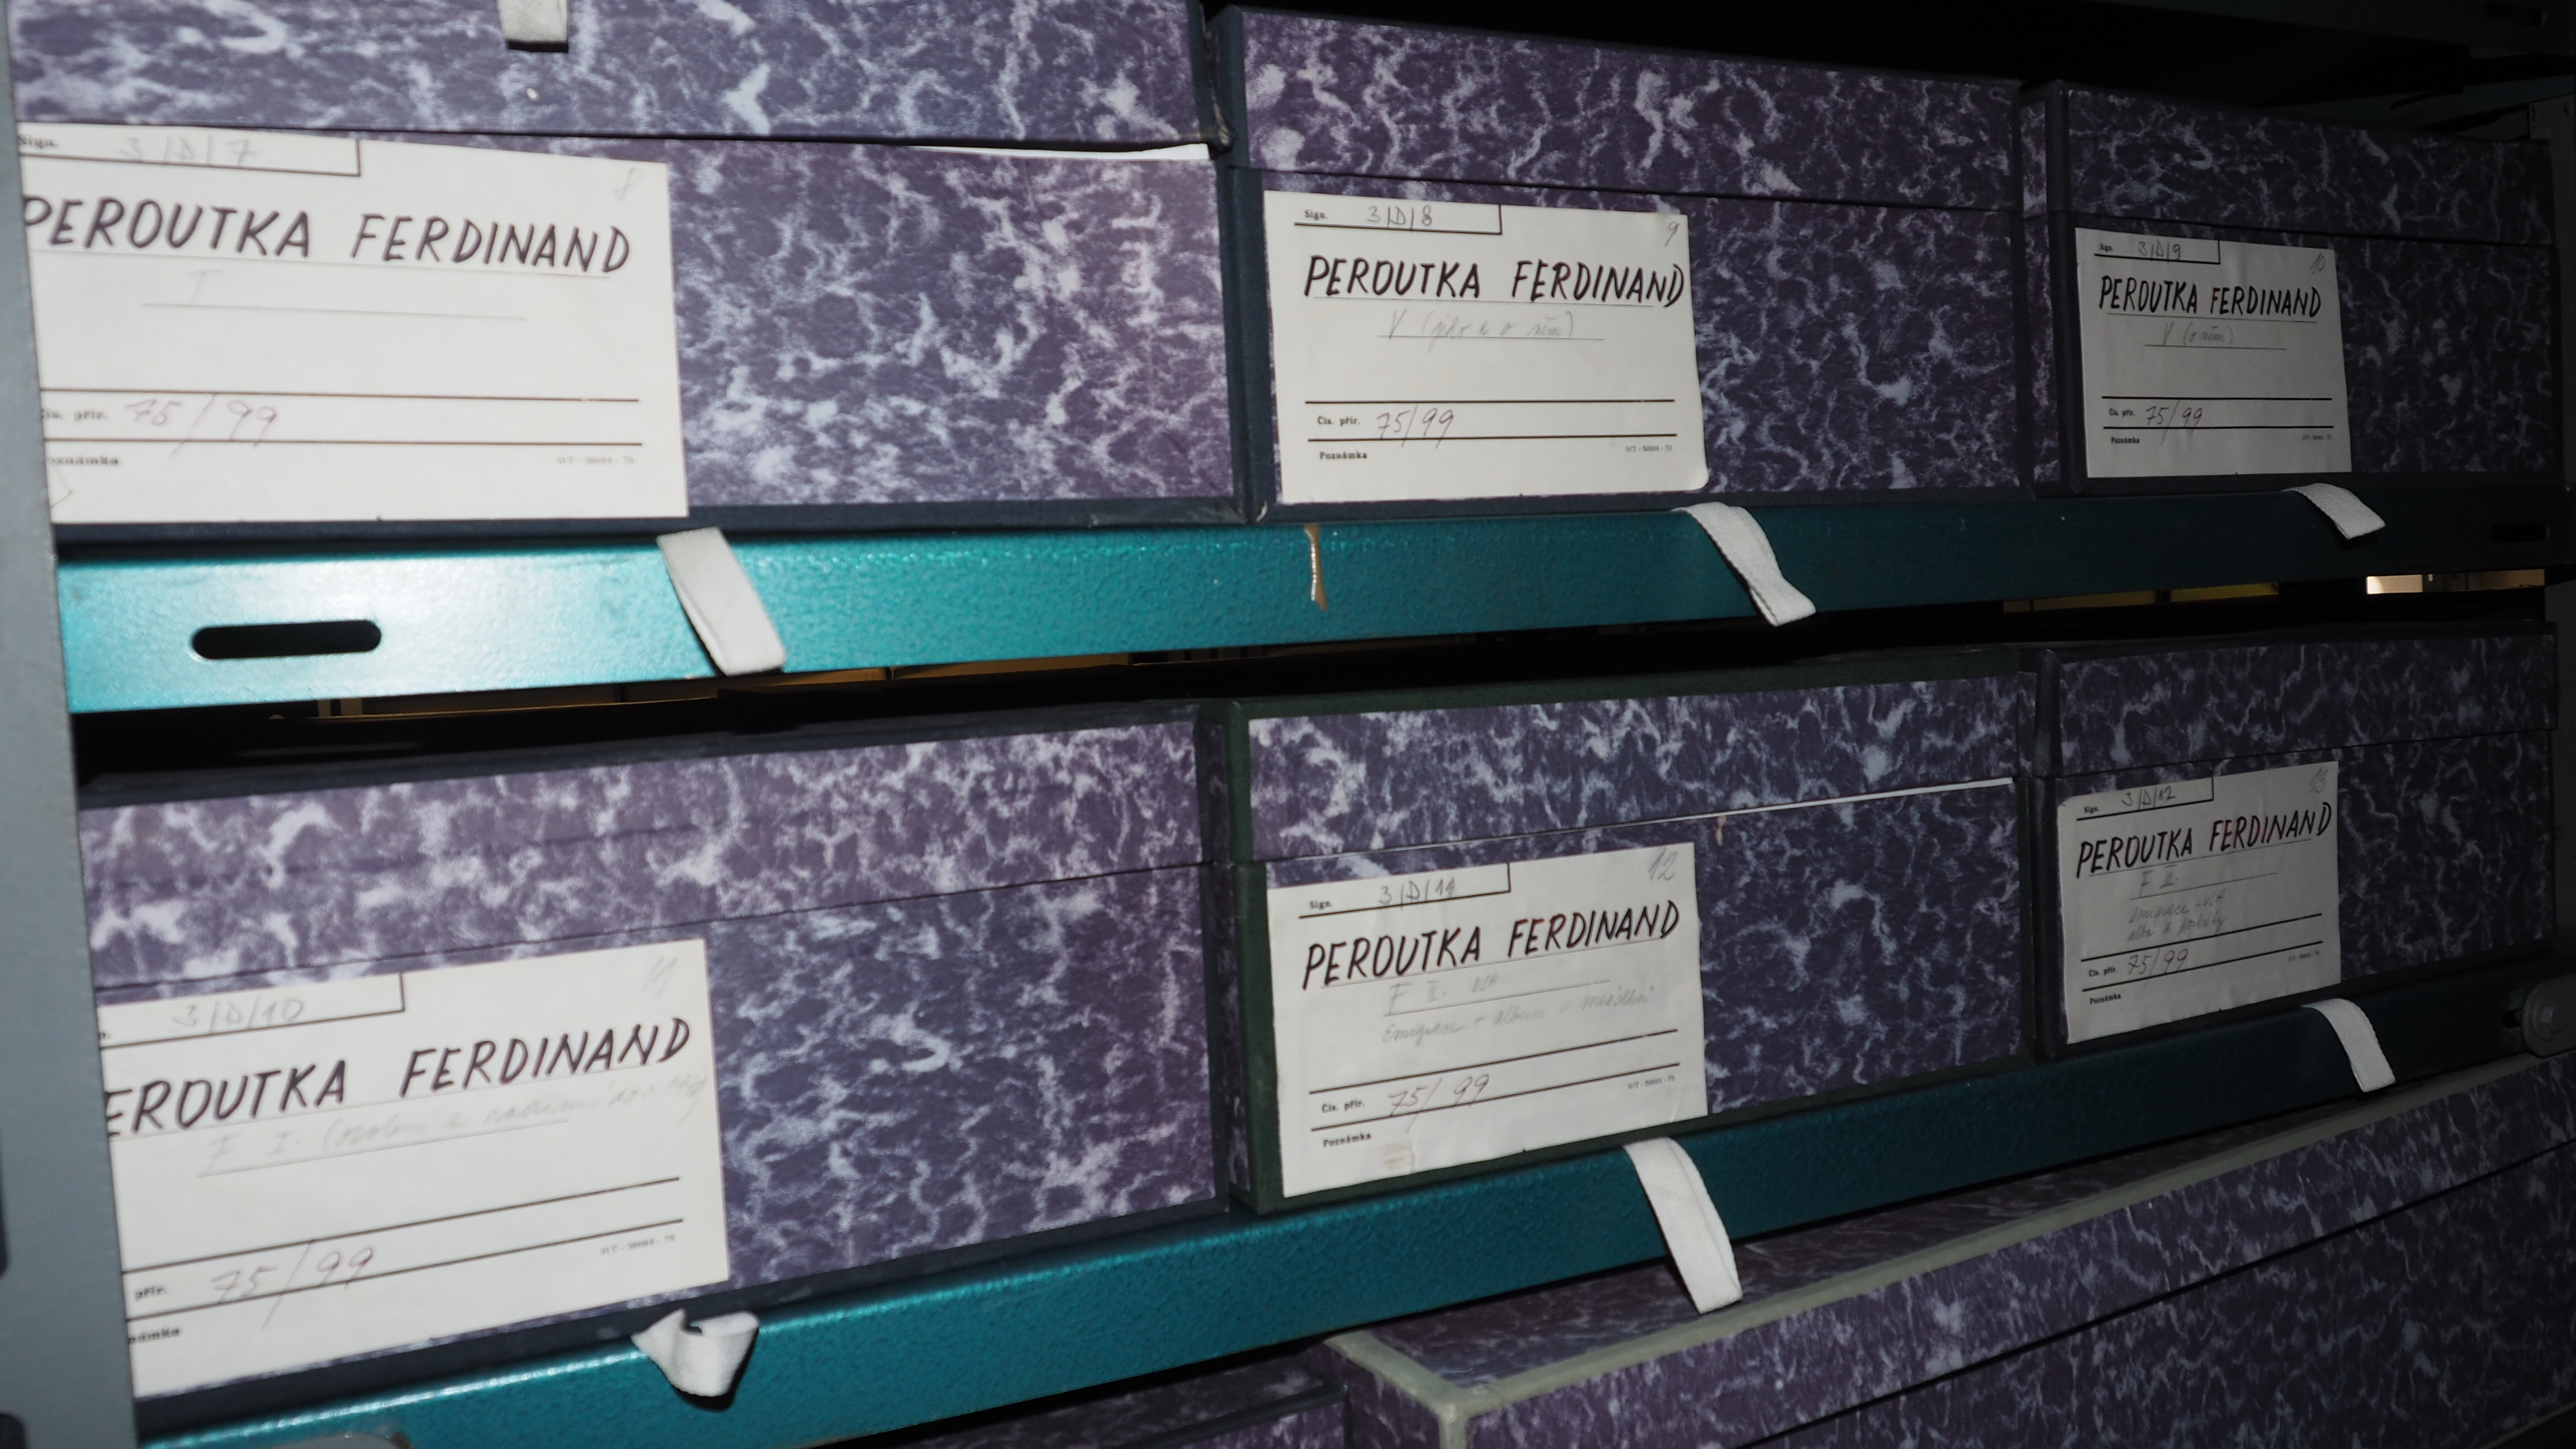 Literary Archive of the Museum of Czech Literature (LA PNP), photo by Petr Kotyk; Originály archiválií jsou uložené v Literárním archivu Památníku národního písemnictví.